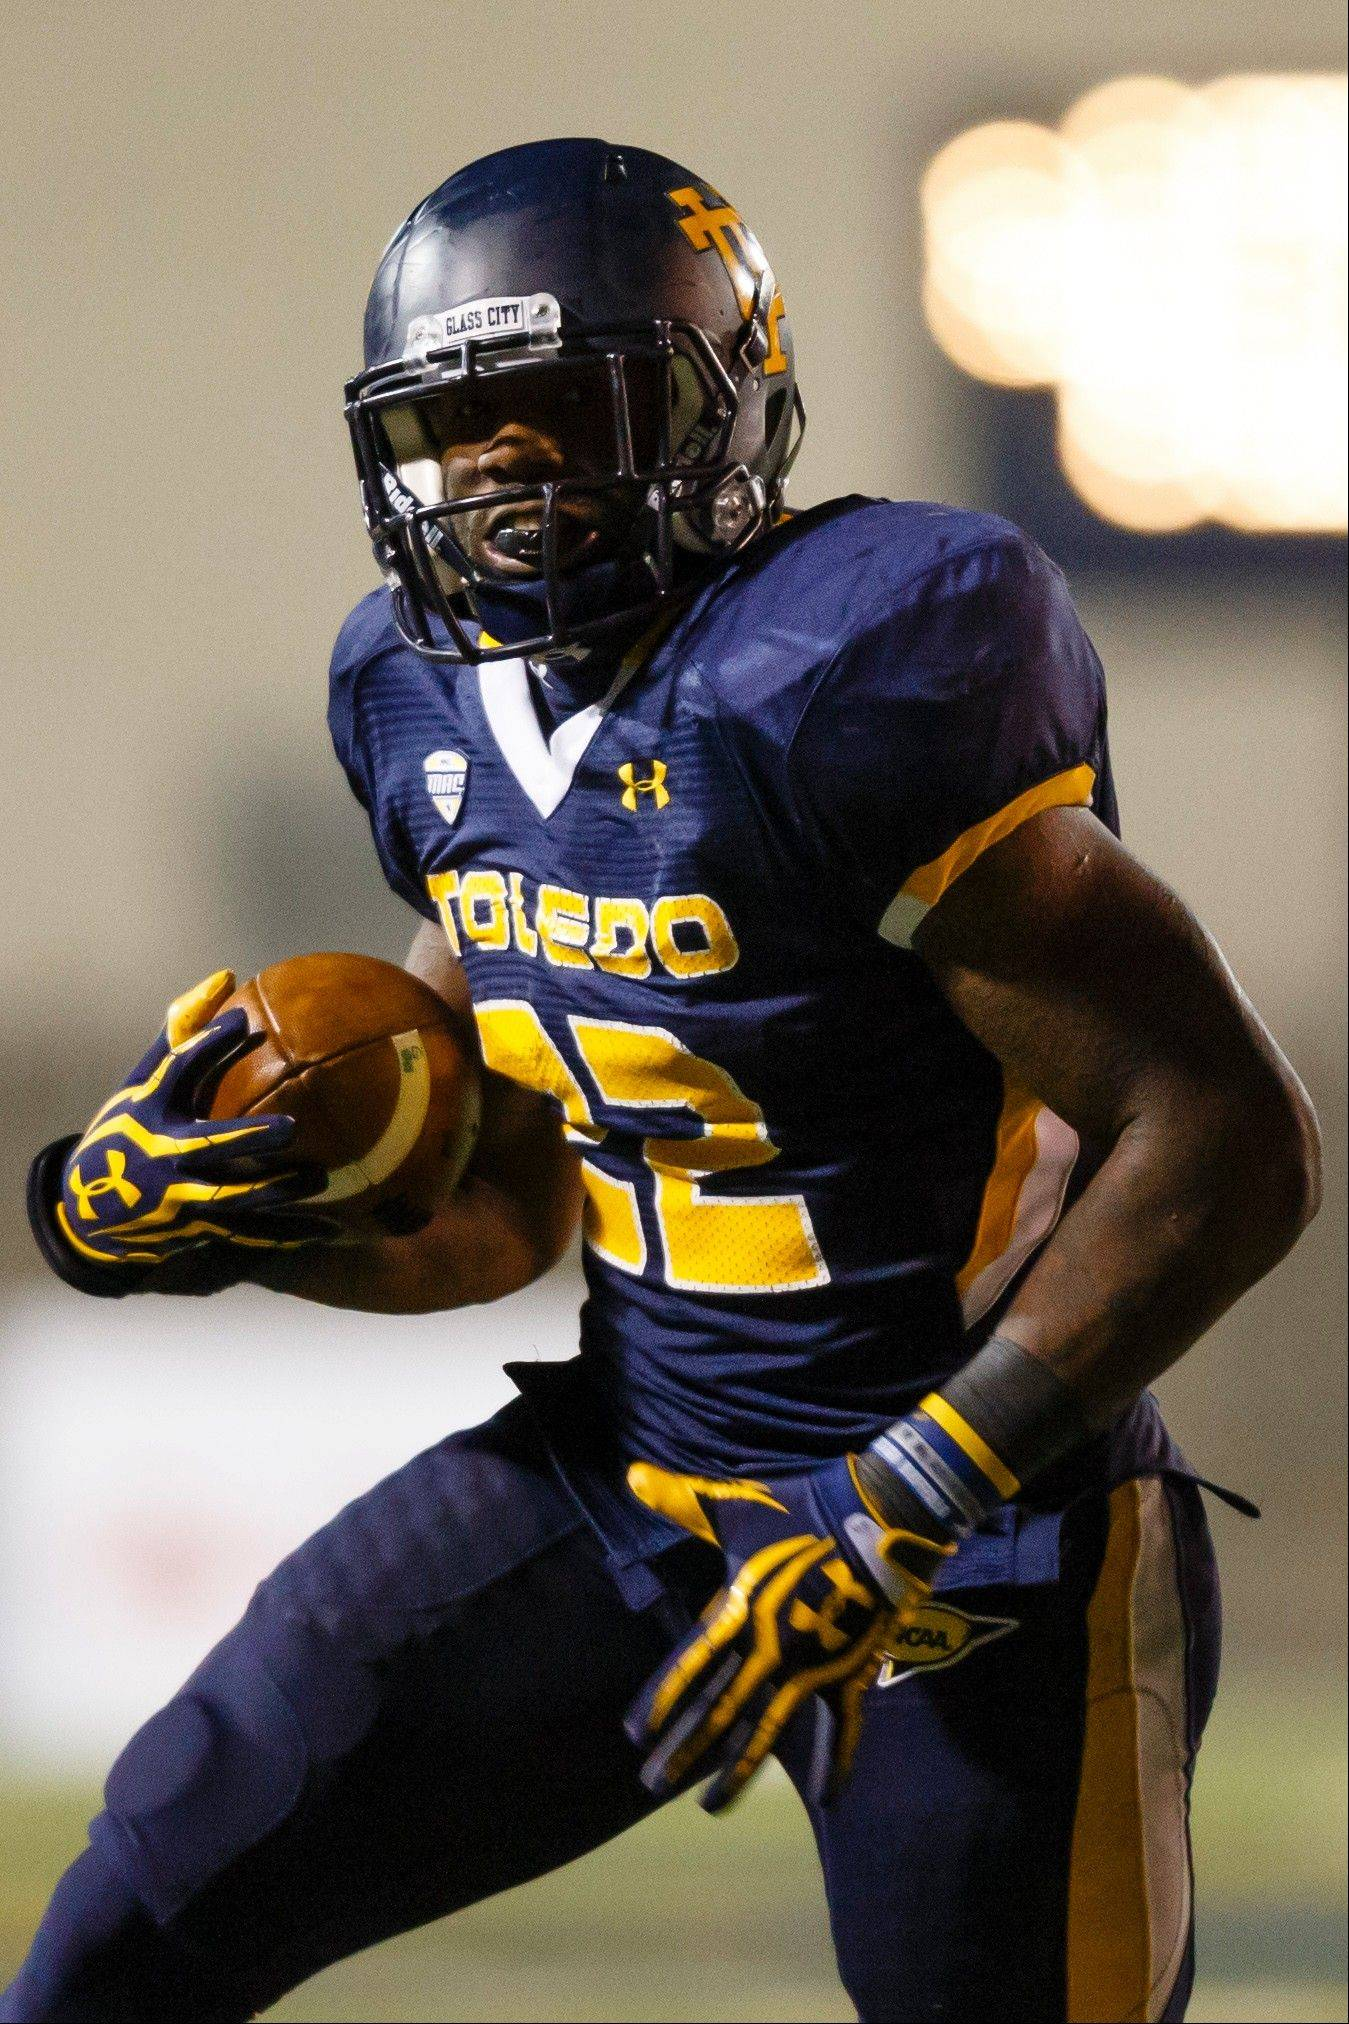 Toledo running back David Fluellen rushed for 200 yards last week in a loss to Ball State. The Rockets (8-2) travel to DeKalb on Wednesday for face 9-1 Northern Illinois, led by quarterback Jordan Lynch, with the MAC West title at stake.